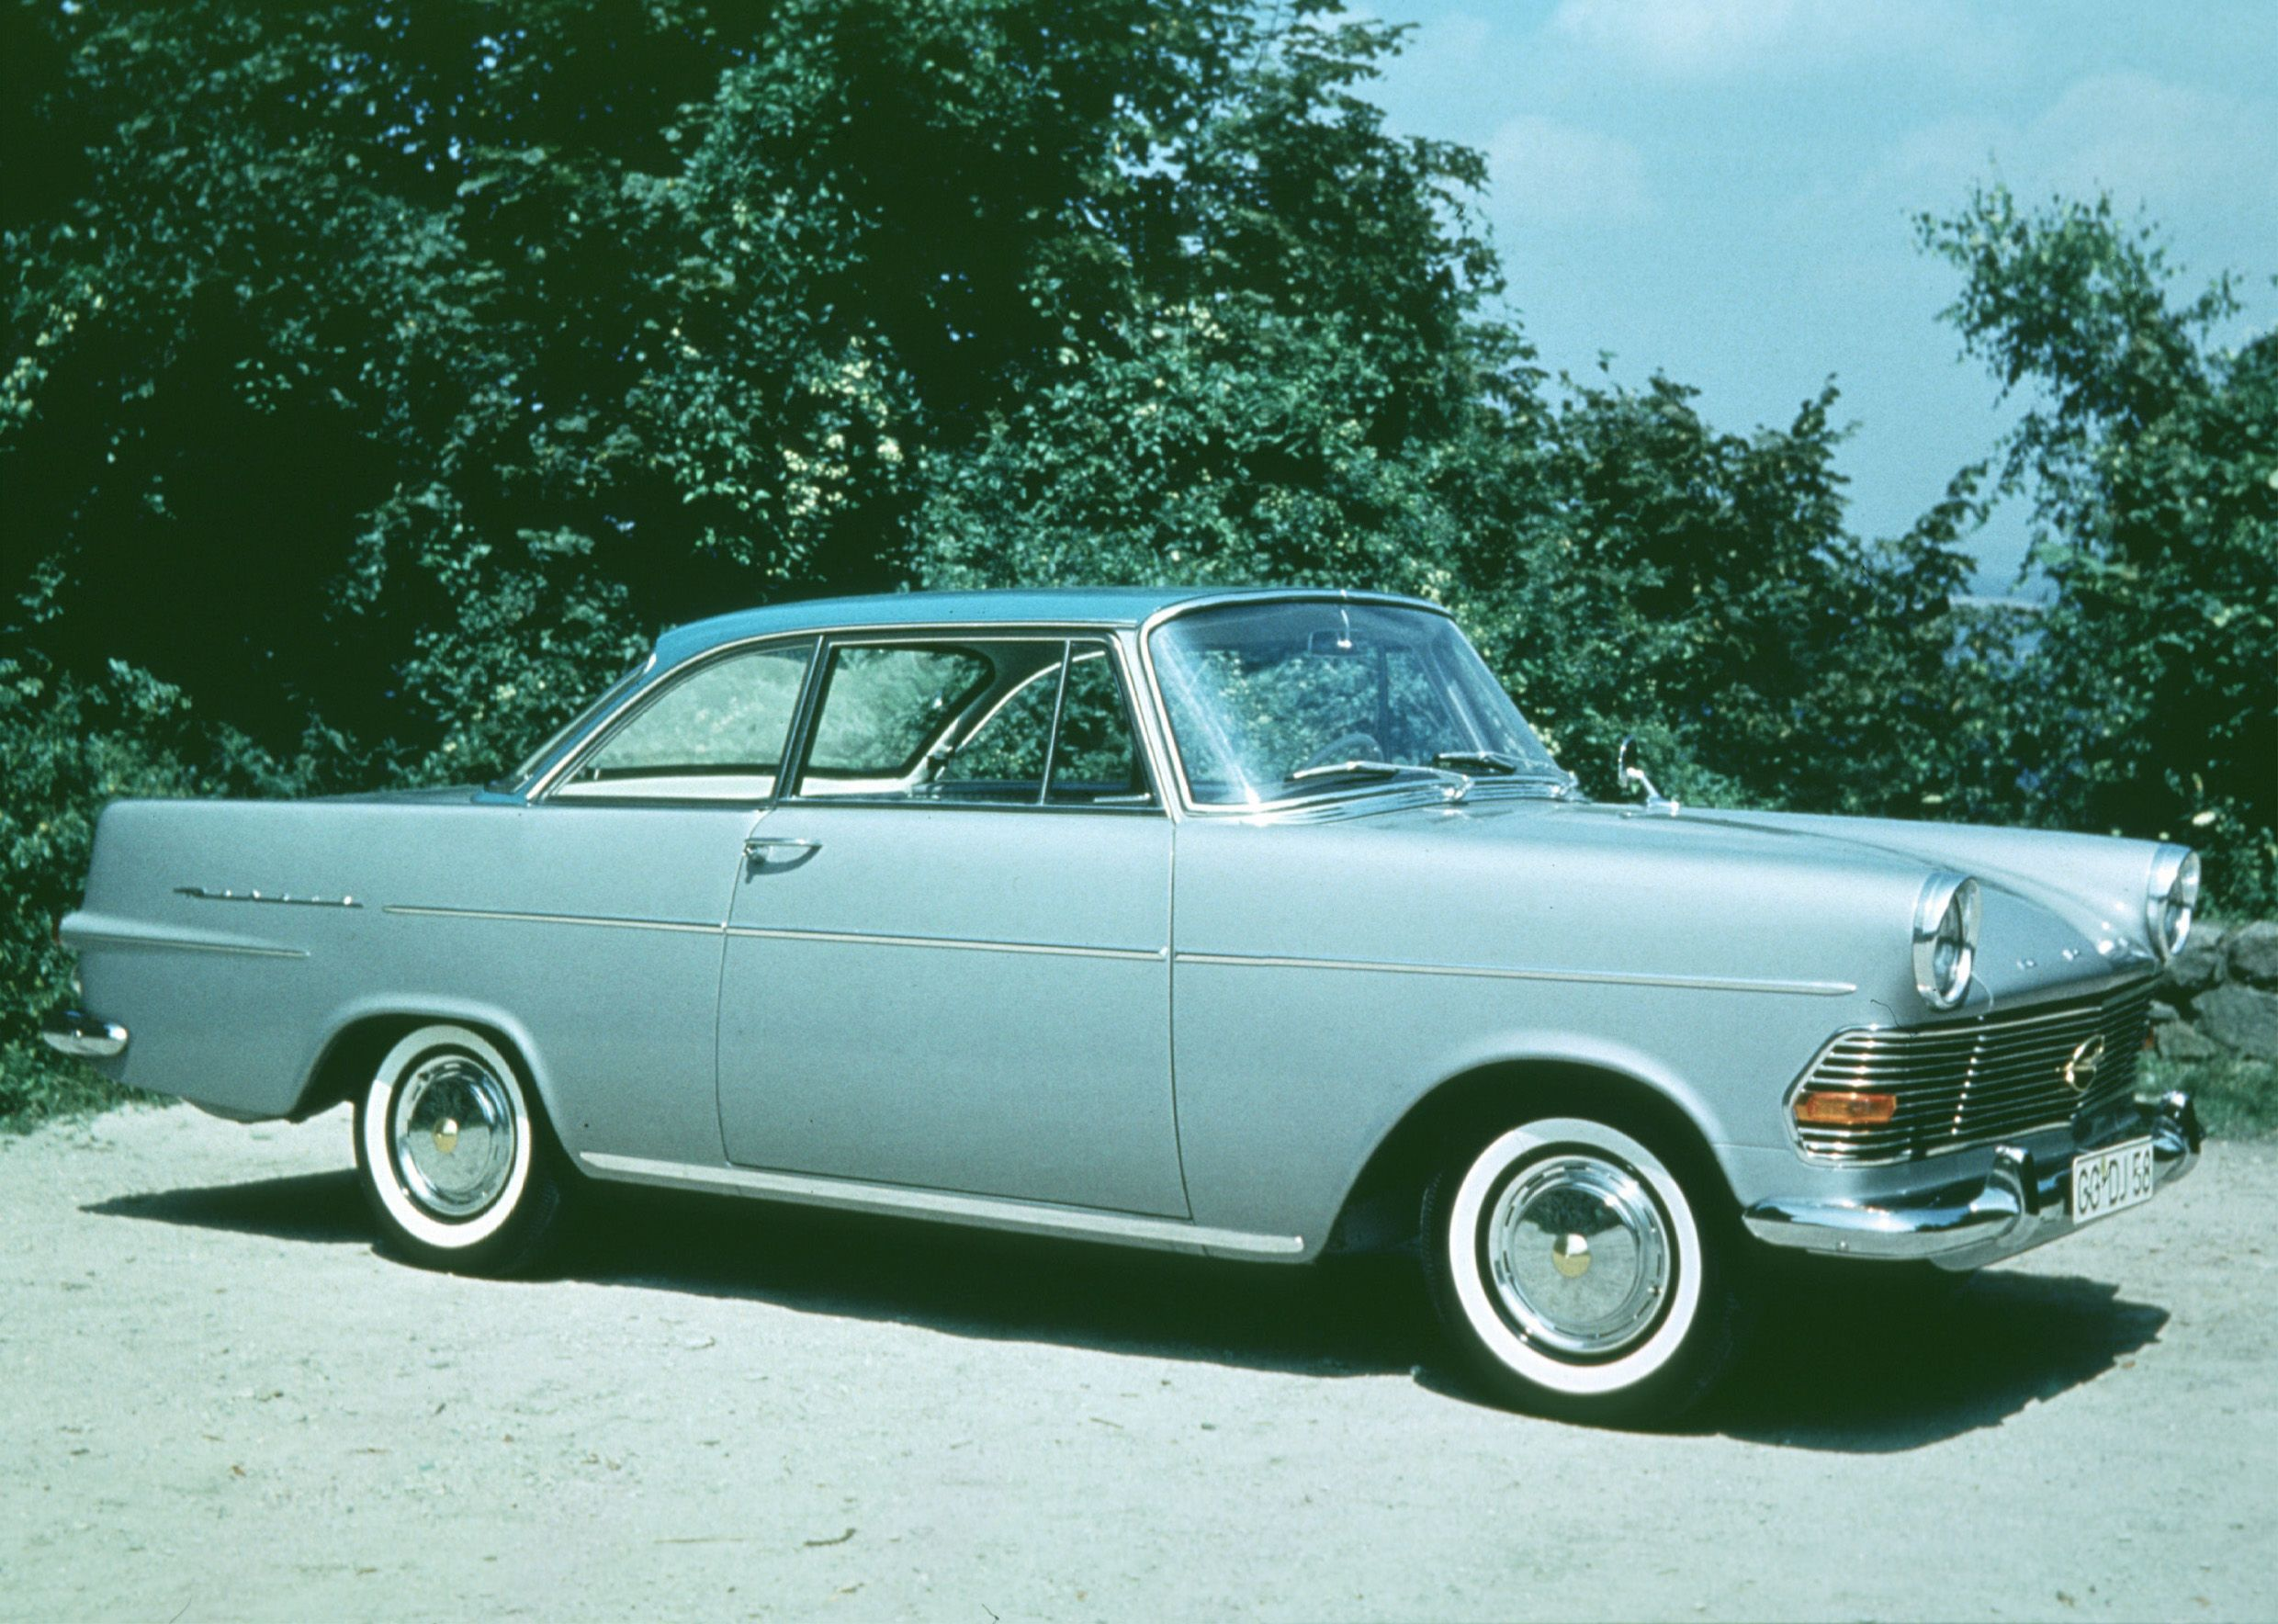 1961 Opel Rekord Coupe | Flickr - Photo Sharing!